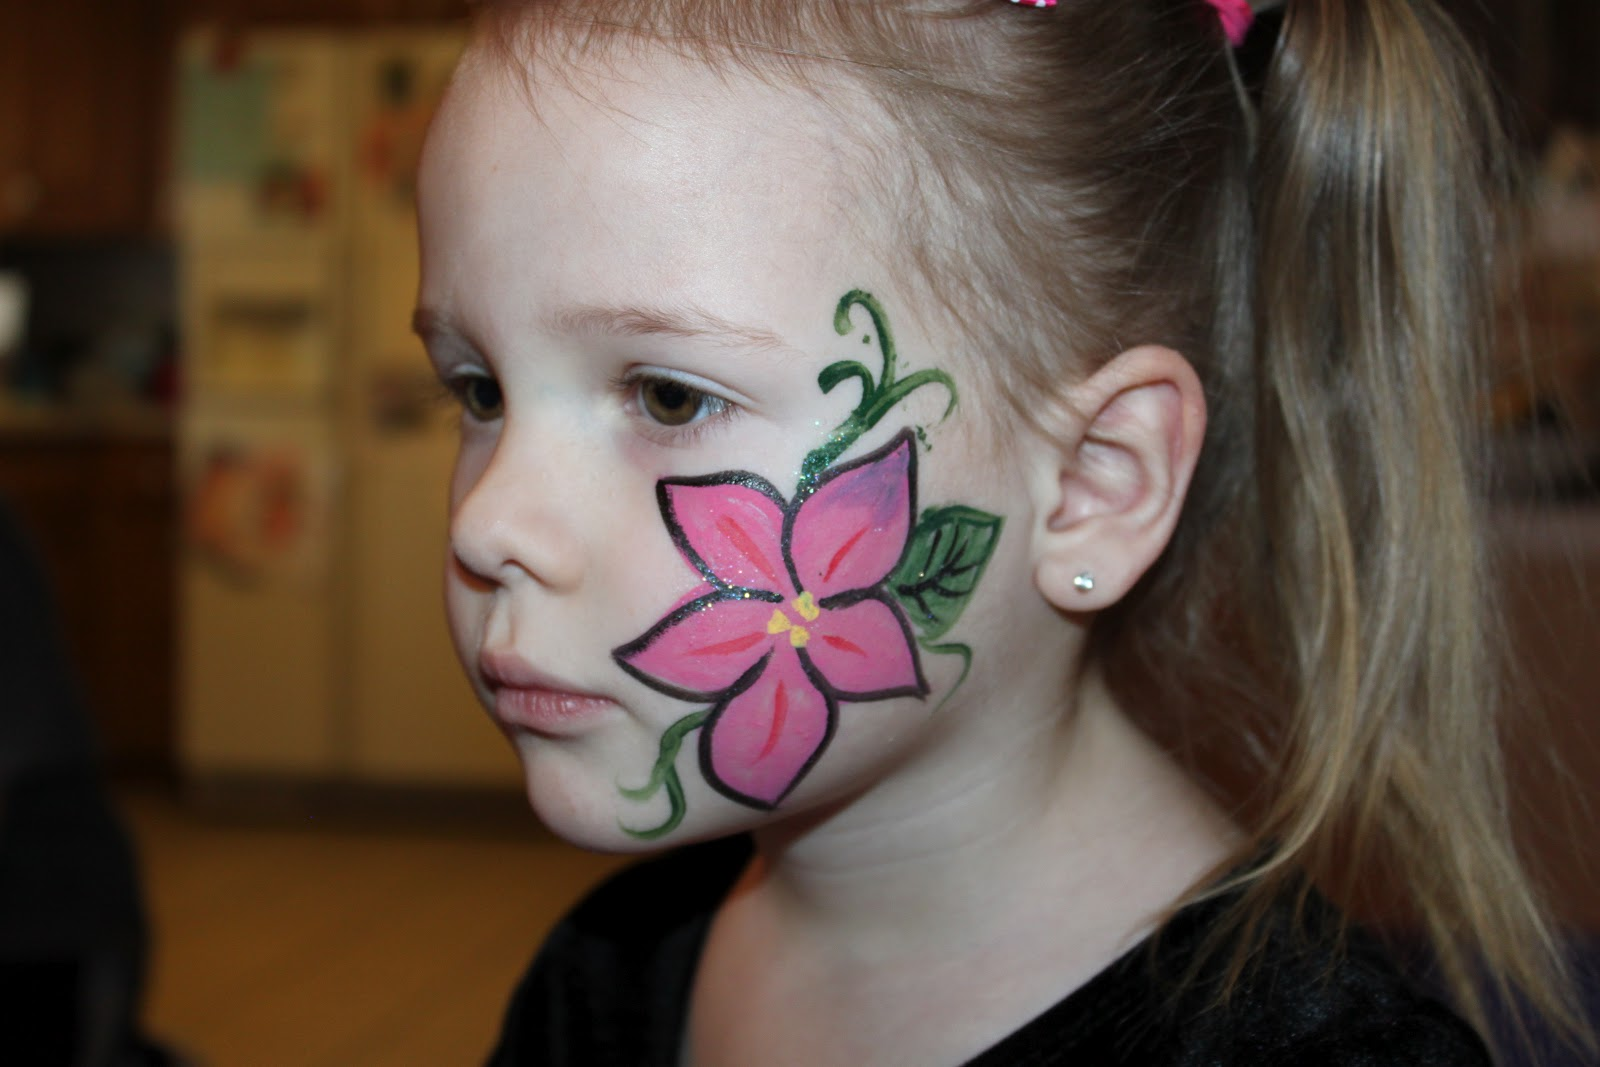 Lulu-Pop Face Painting: Fun Flower